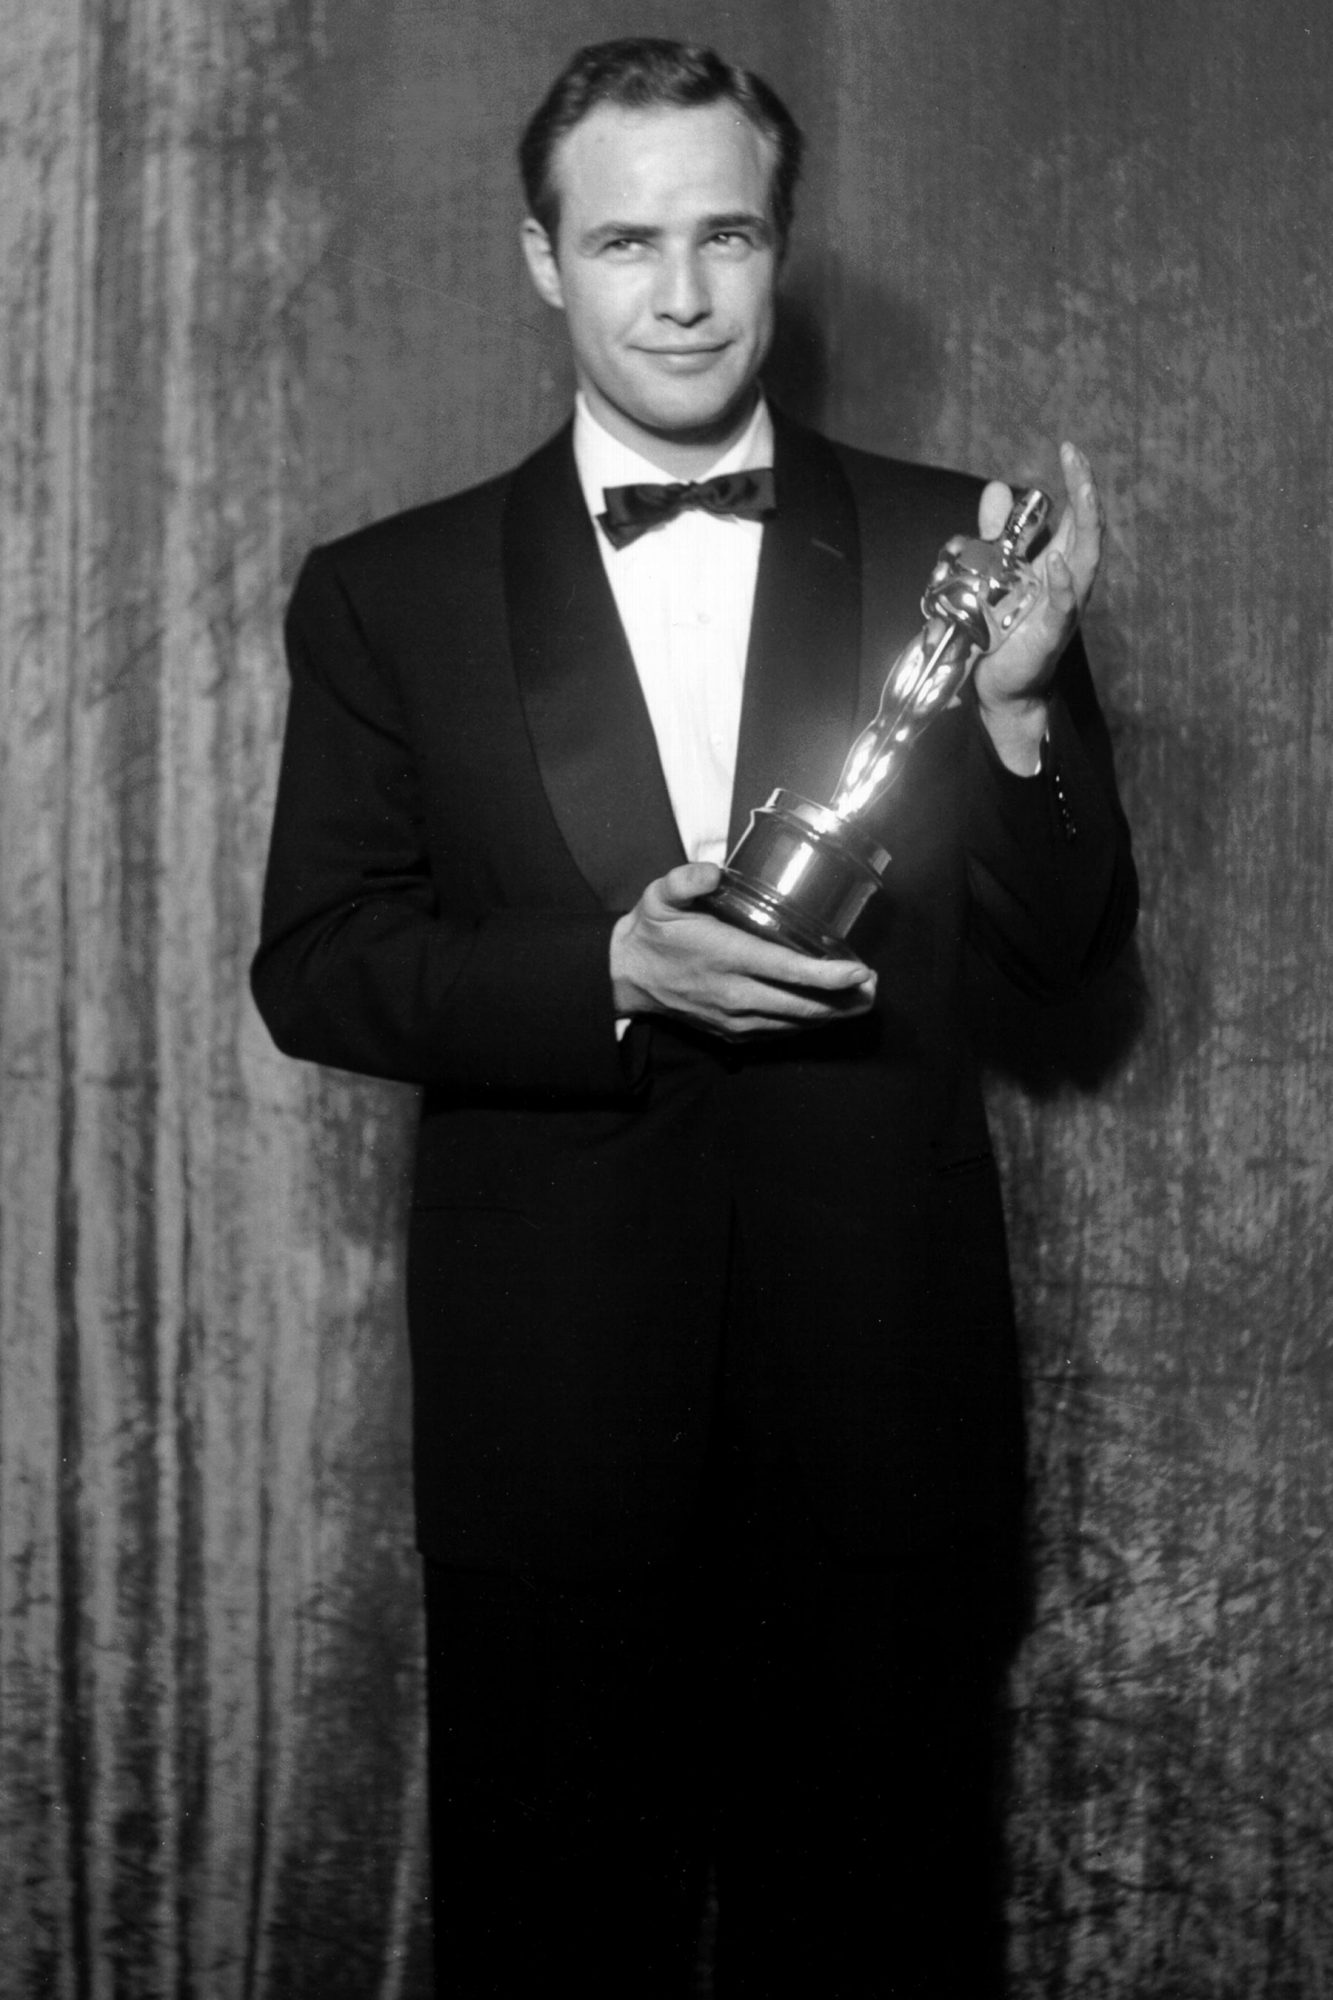 Best Actor Winner With His Oscar